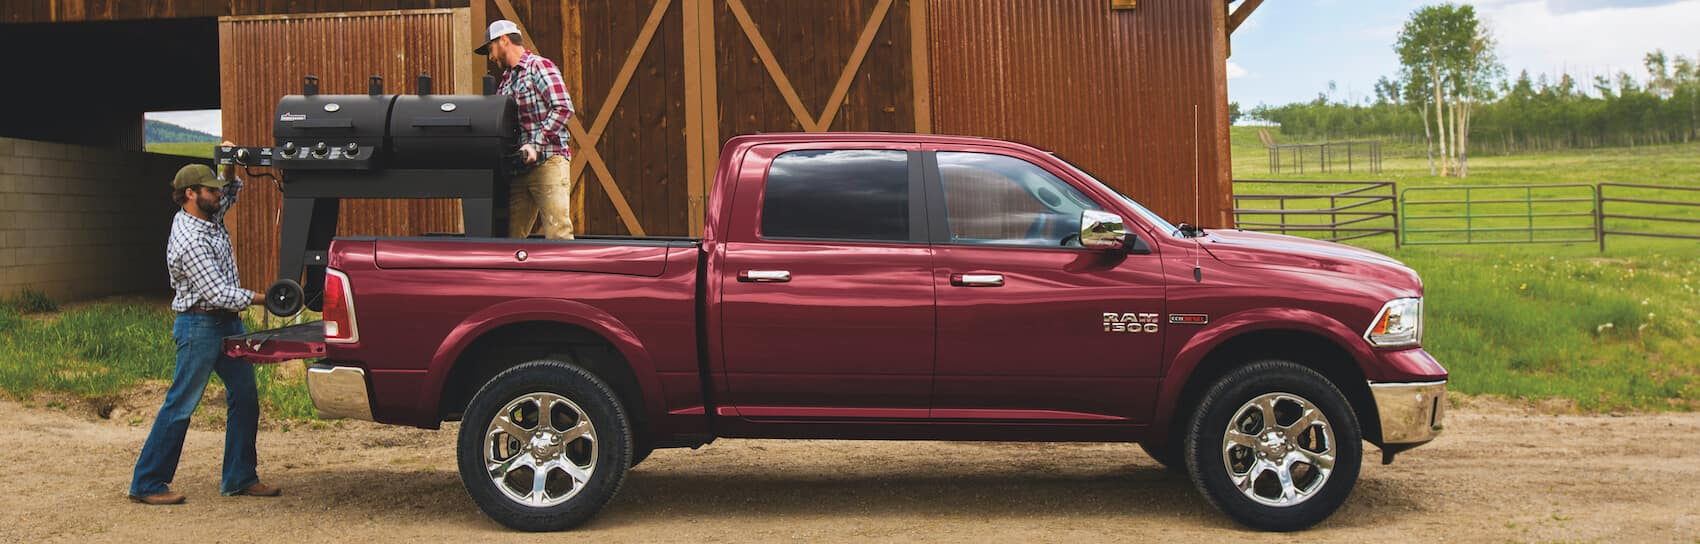 Inside the Cabin of the Ram 1500